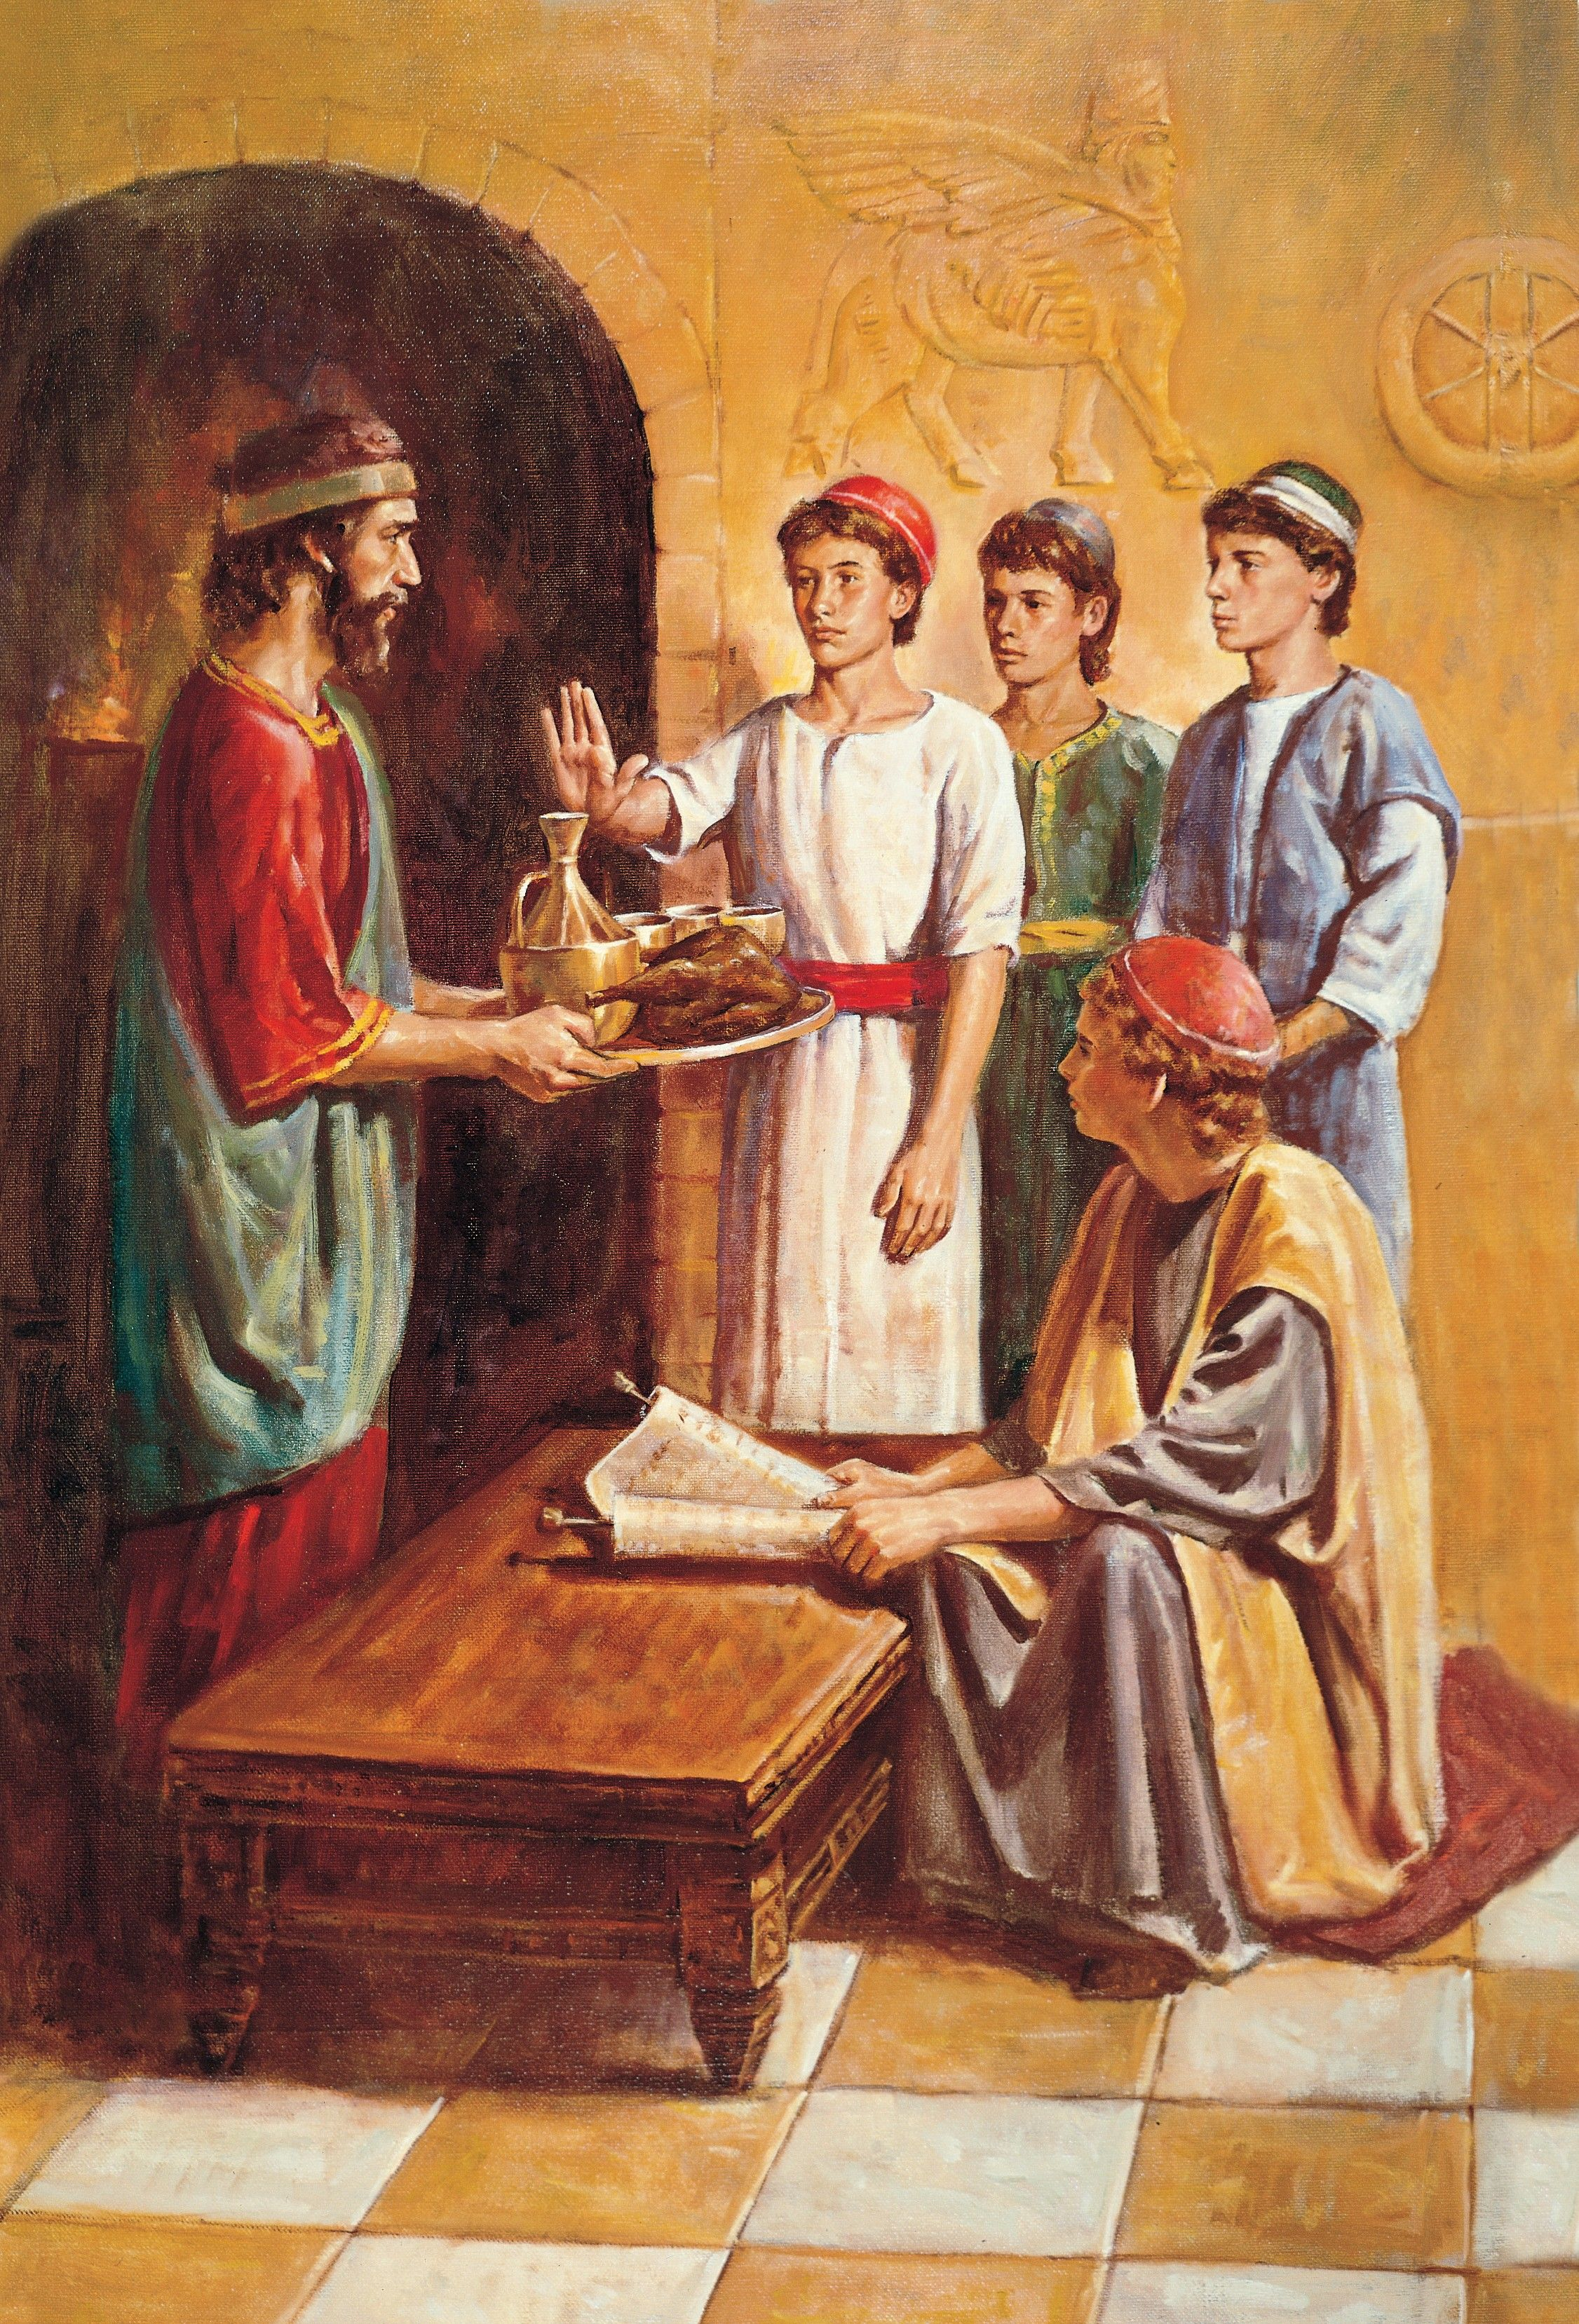 Daniel Refusing the King's Meat and Wine, by Del Parson (62094); GAK 114; GAB 23; Primary manual 1-37; Primary manual 3-29; Primary manual 6-45; Daniel 1